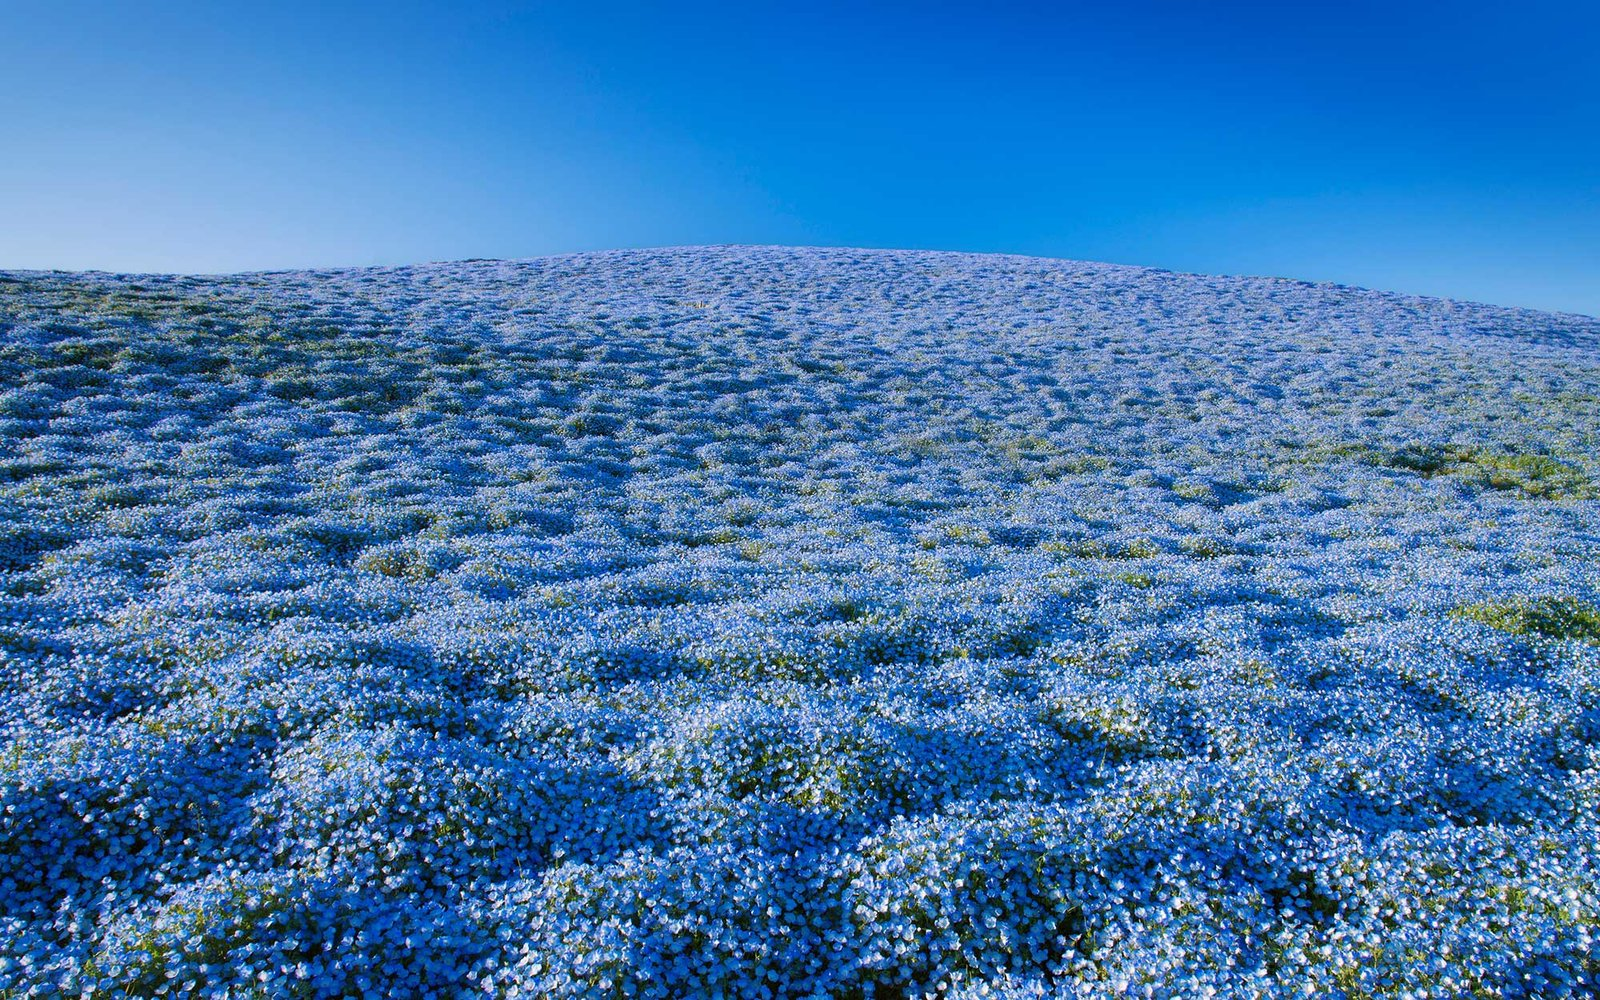 Over 4 million blue flowers bloomed at a japanese park travel japan kanto region mightylinksfo